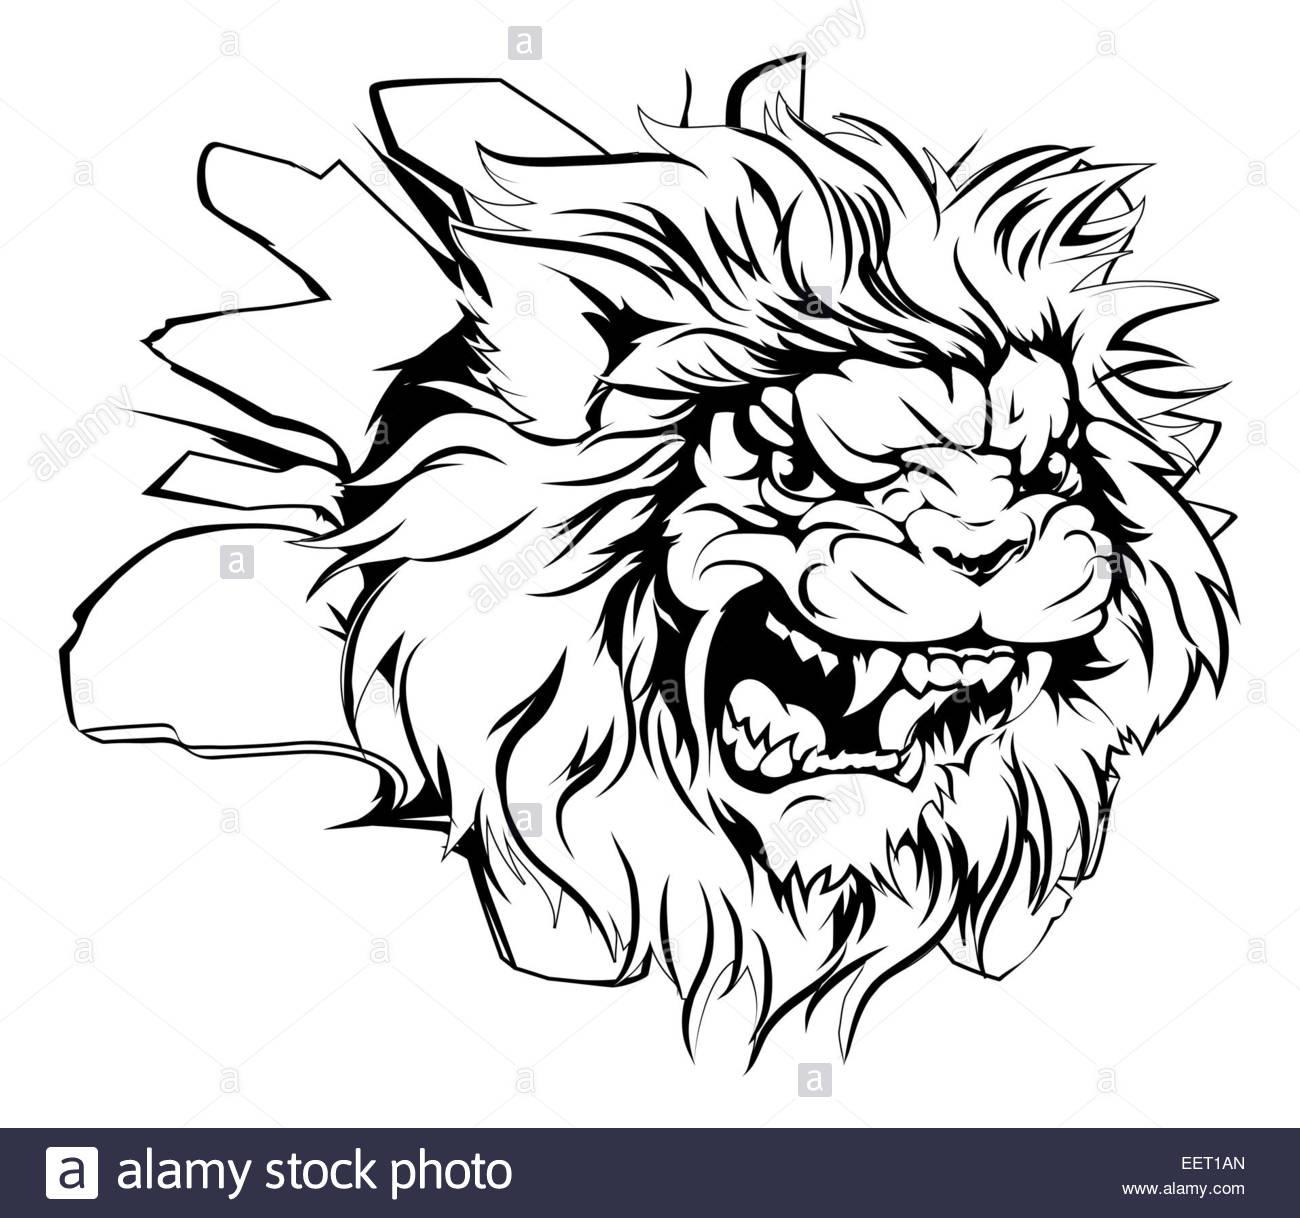 1300x1218 A Mean Looking Lion Animal Mascot Breaking Through A Wall Stock